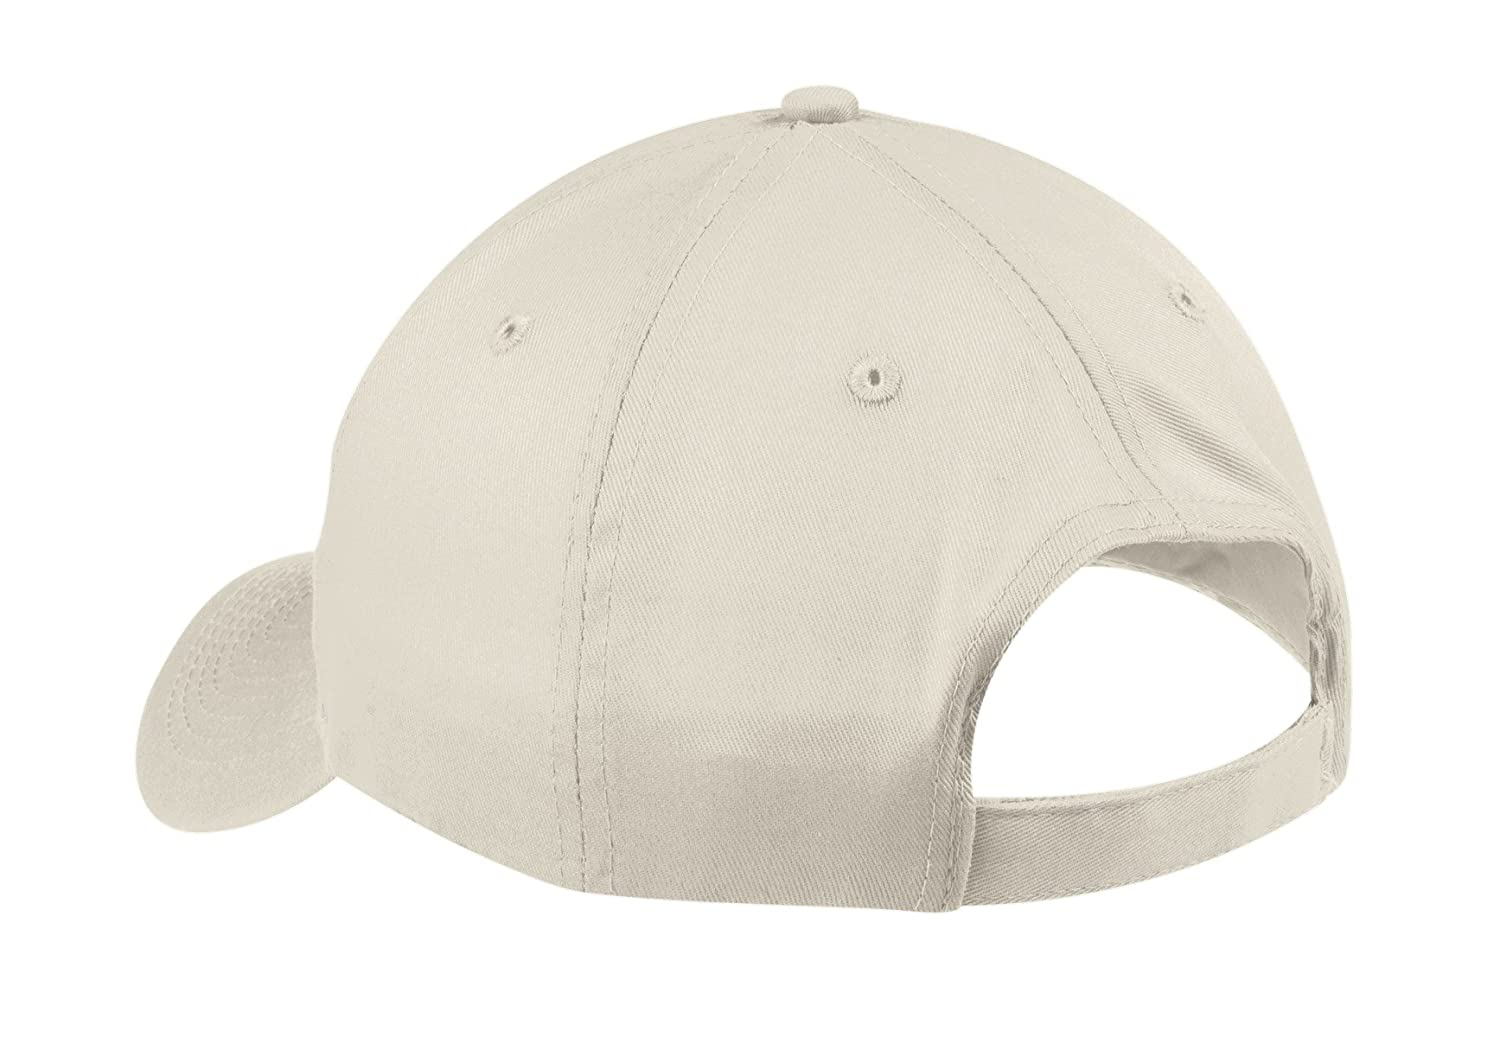 6d99517036d Port   Company Unisex-adult Six-Panel Twill Cap CP80 -Oyster OSFA at Amazon  Men s Clothing store